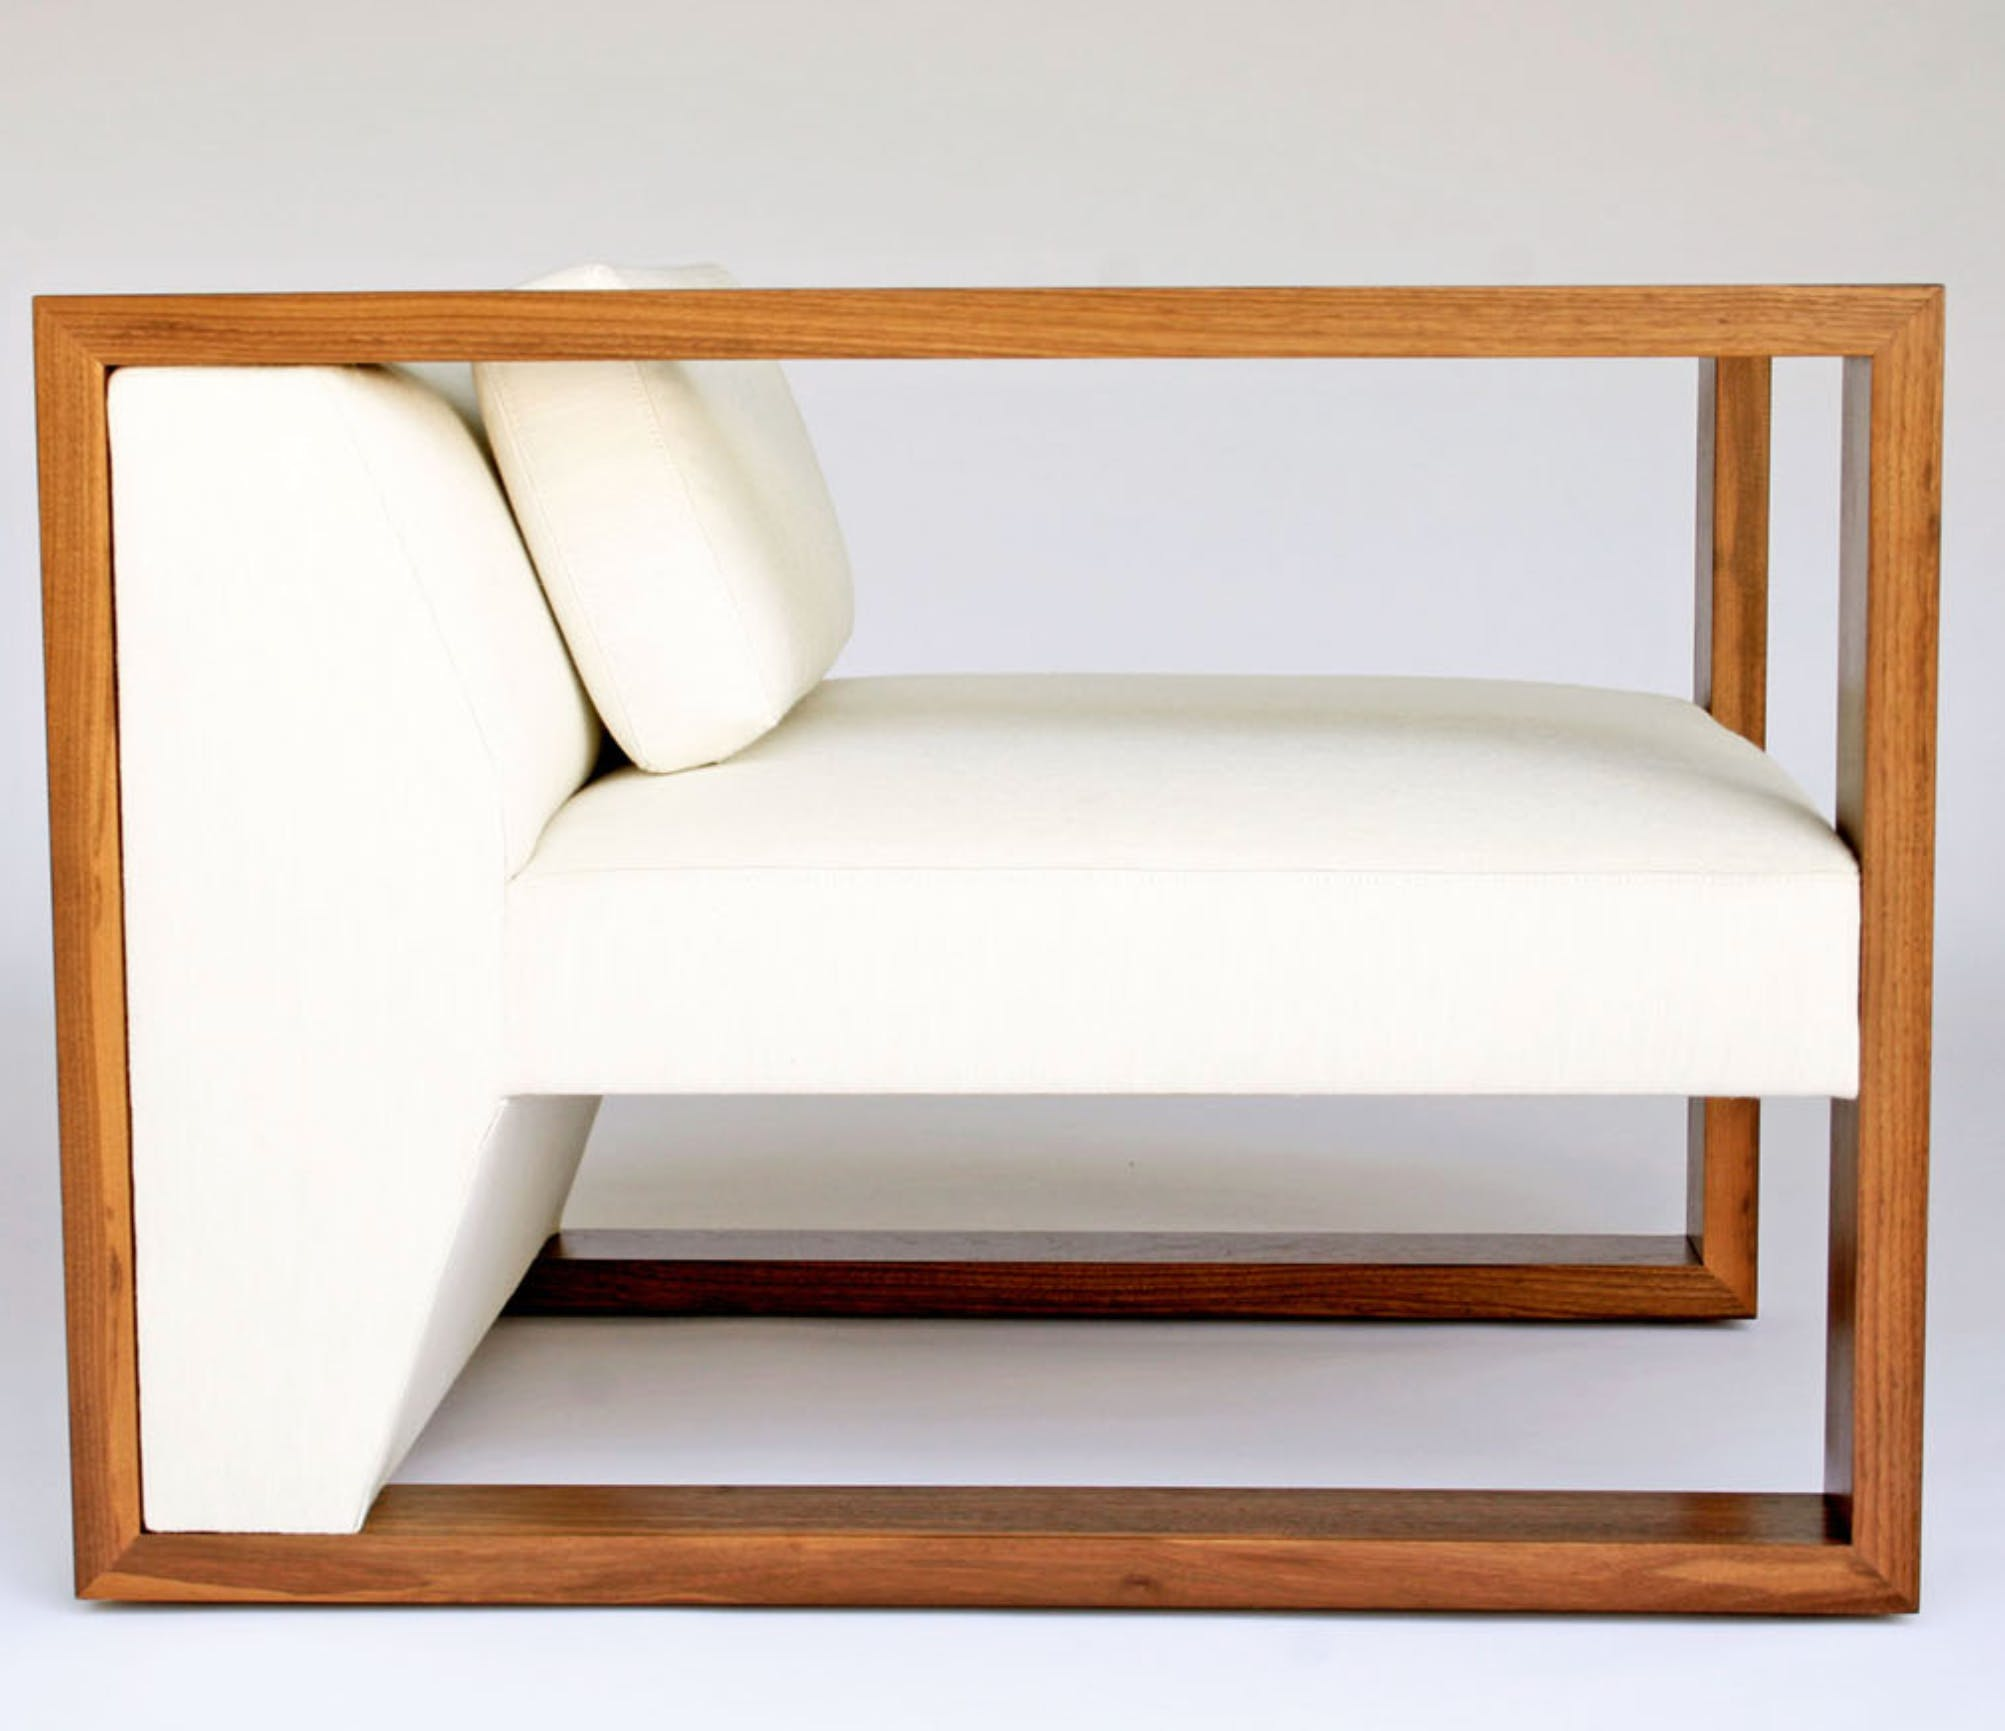 Phase Design Maxell Chair Side Haute Living